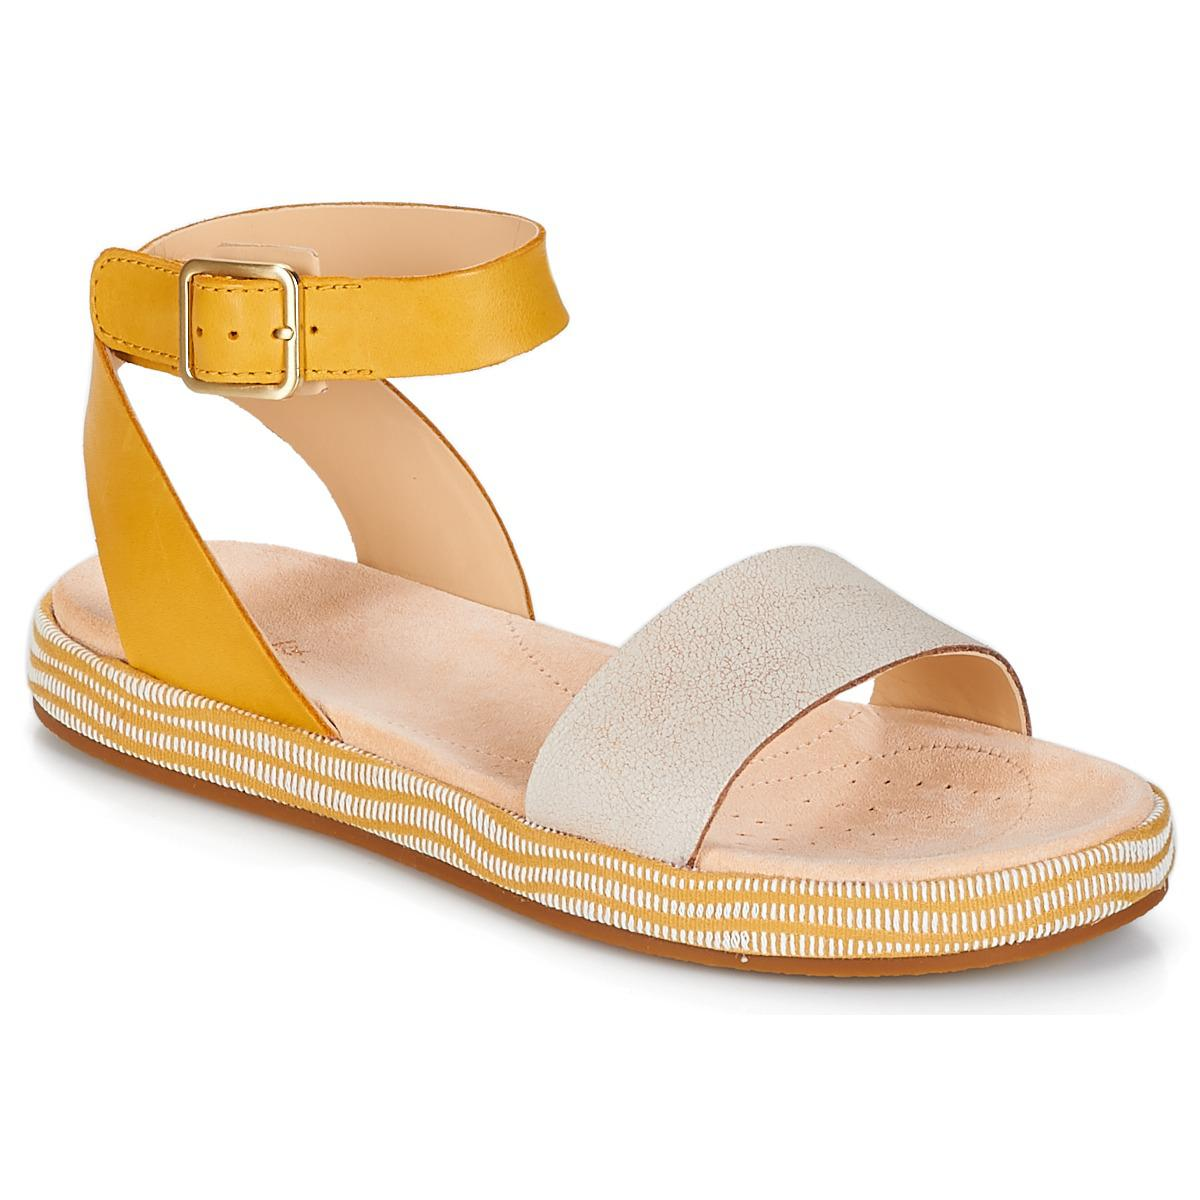 154ae96fb6a Clarks Botanic Ivy Sandals in Yellow - Save 32% - Lyst